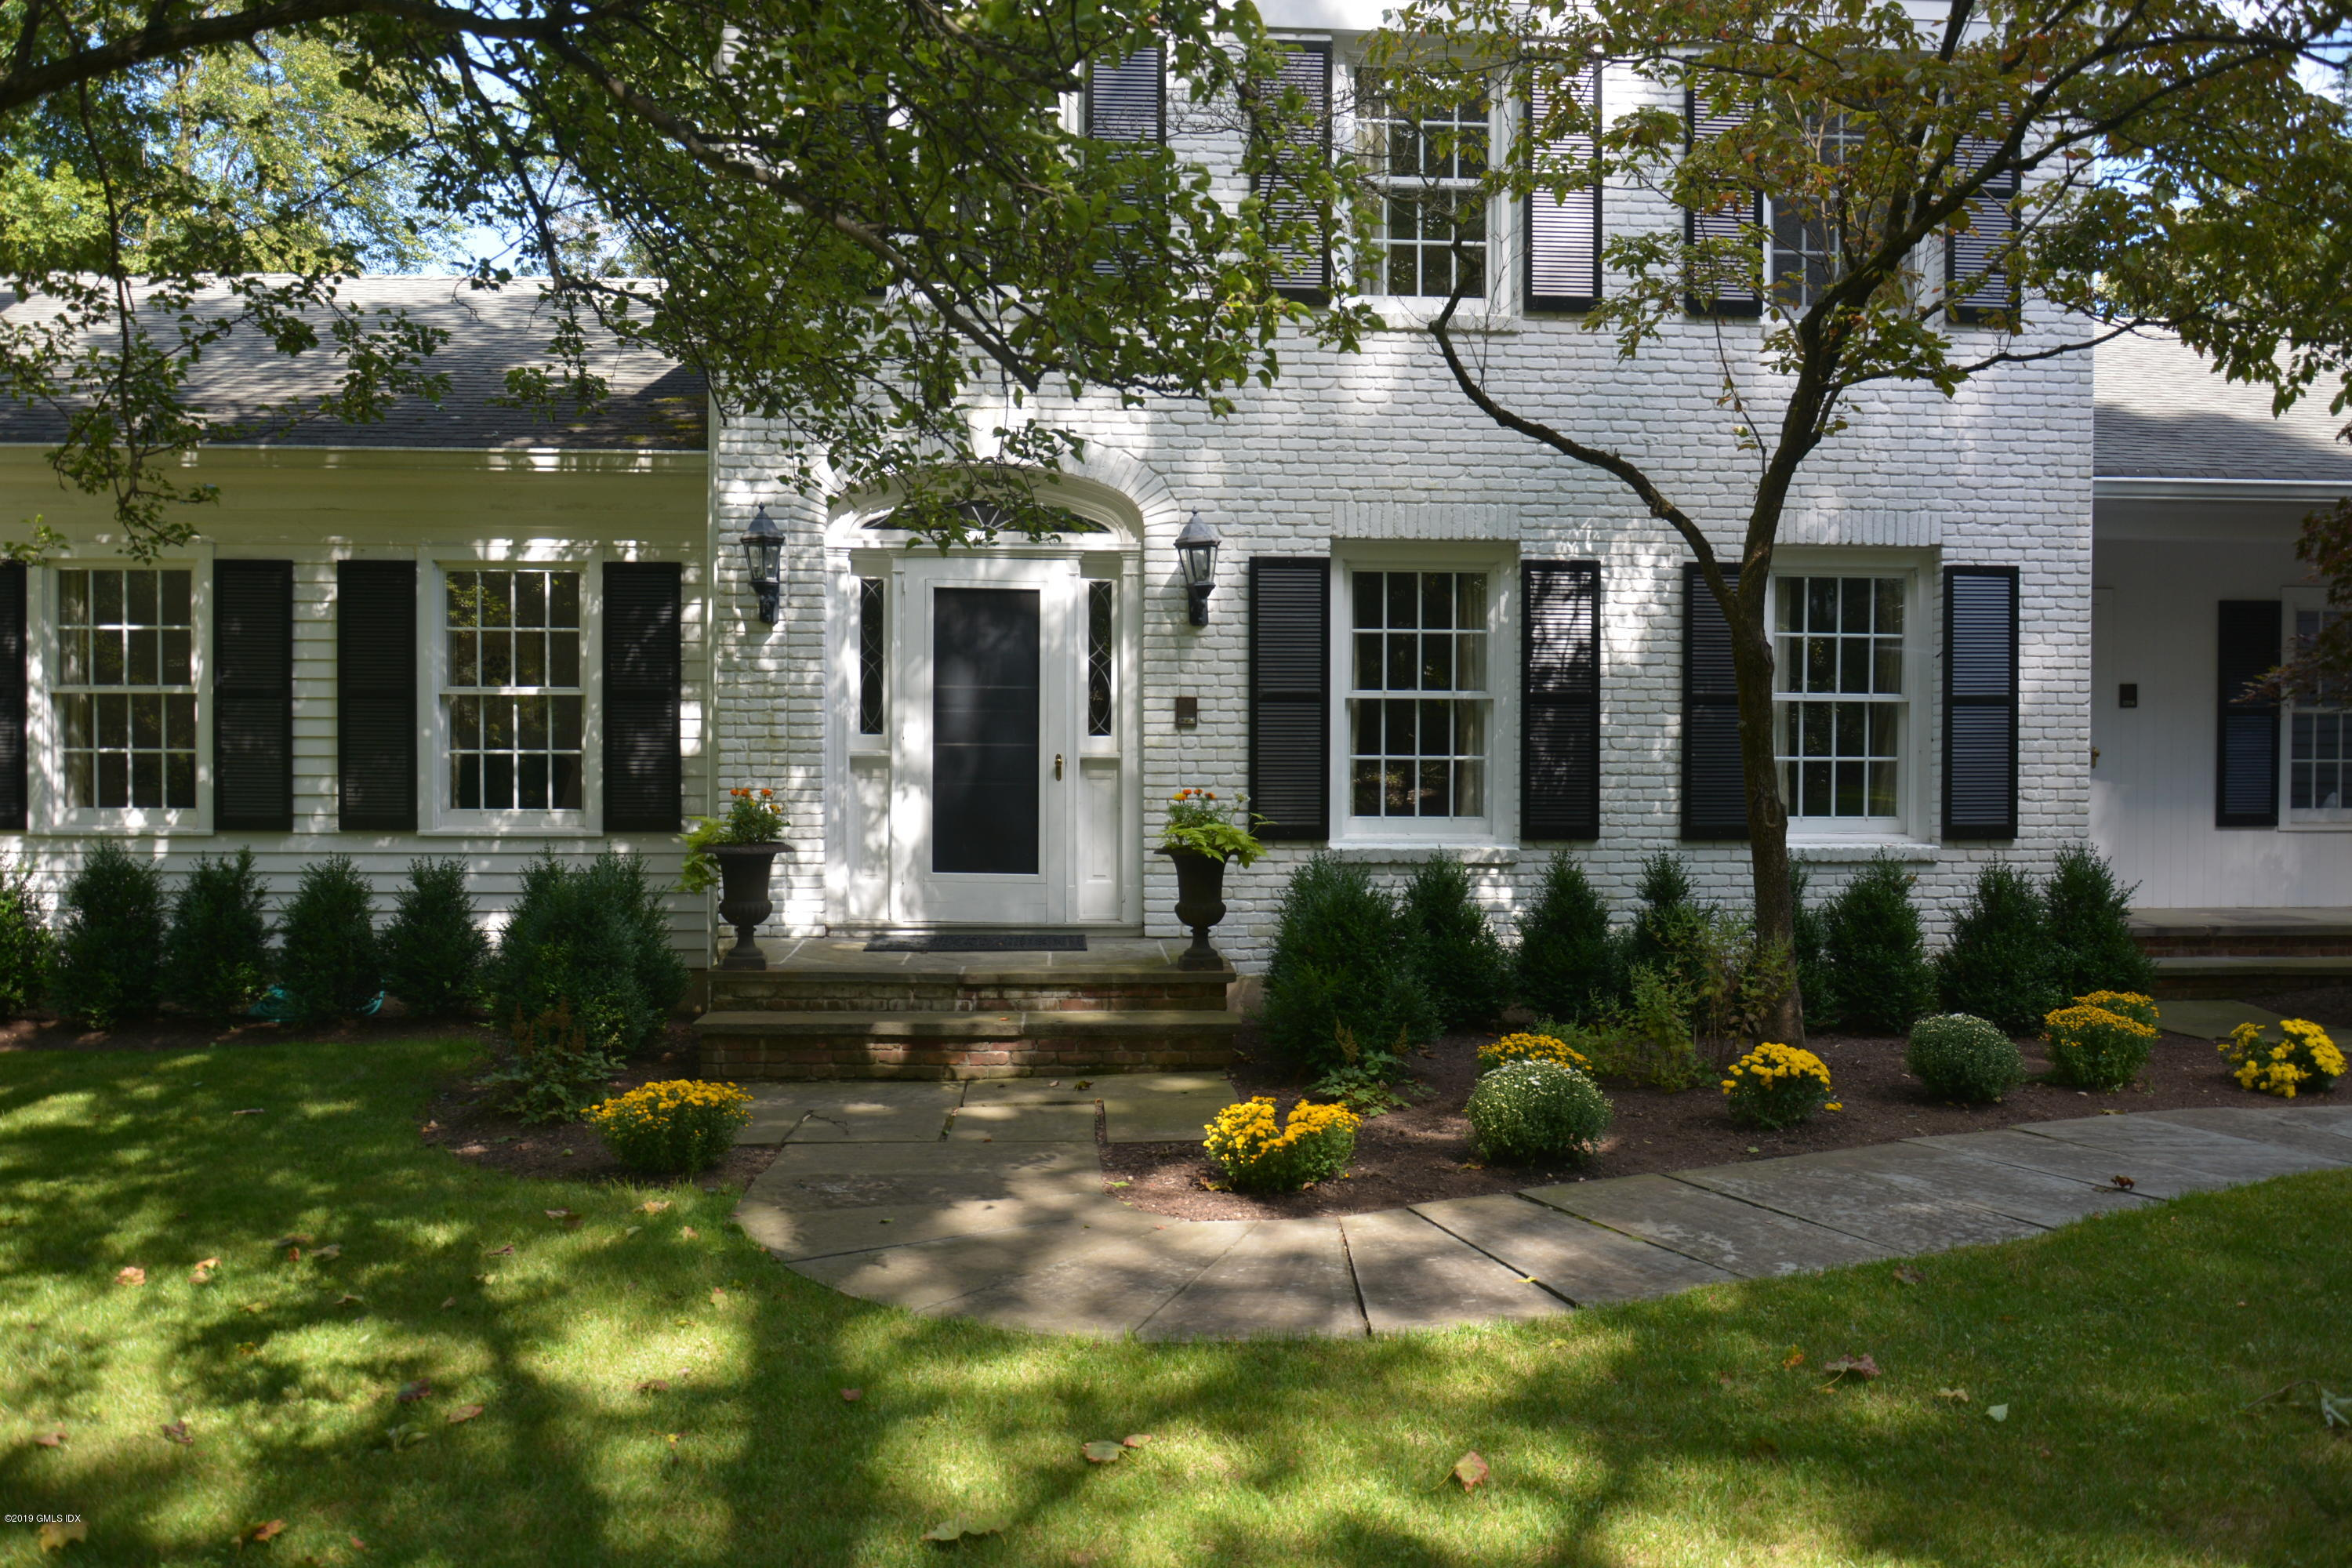 91 Sawmill Lane,Greenwich,Connecticut 06830,5 Bedrooms Bedrooms,4 BathroomsBathrooms,Single family,Sawmill,107861